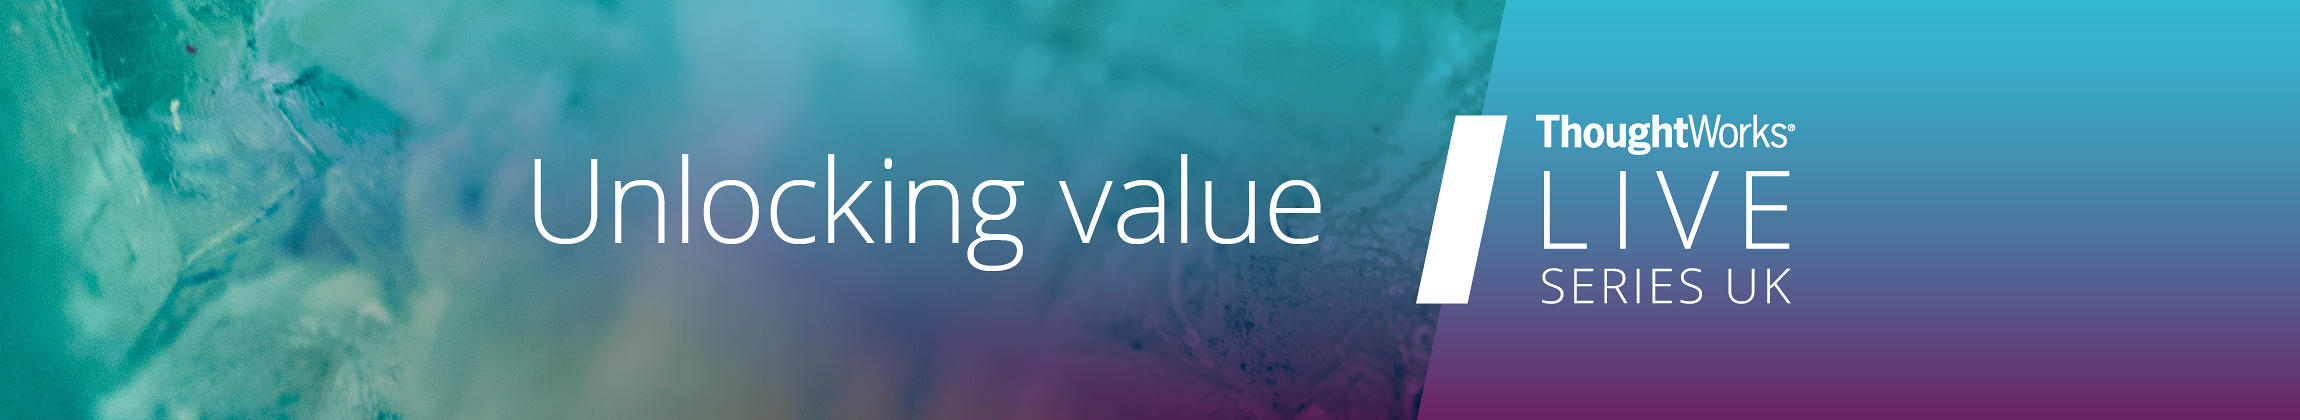 Unlocking value